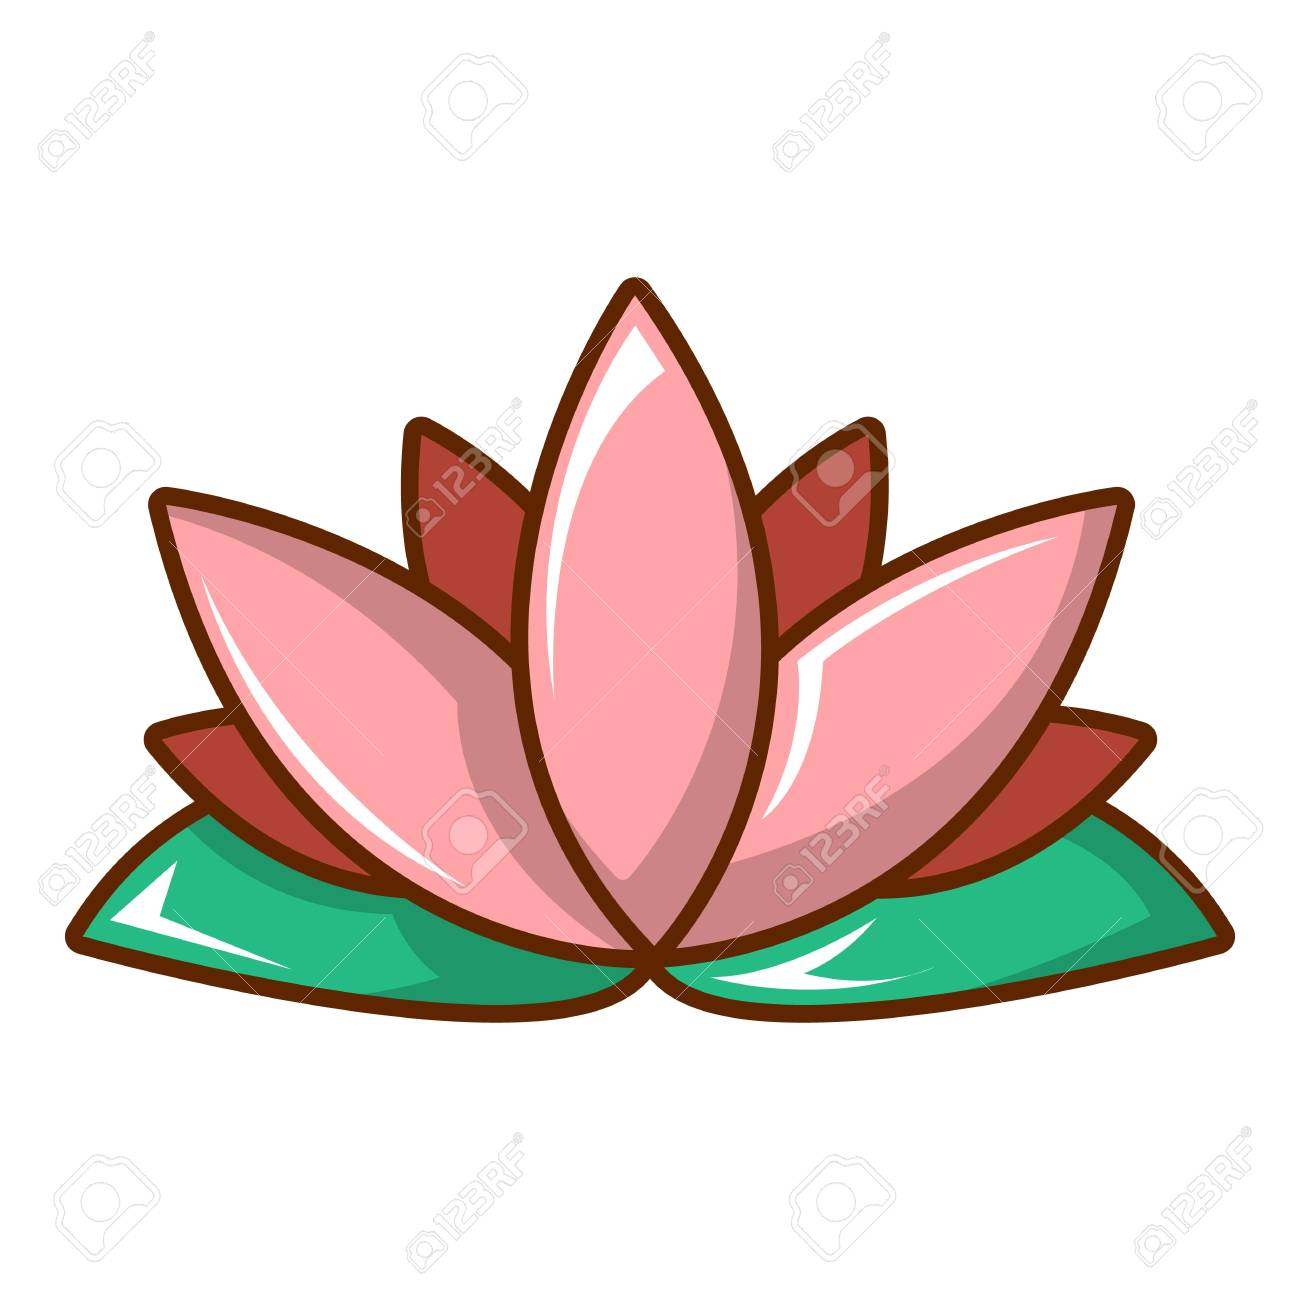 Lotus Flower Icon Cartoon Style Royalty Free Cliparts Vectors And